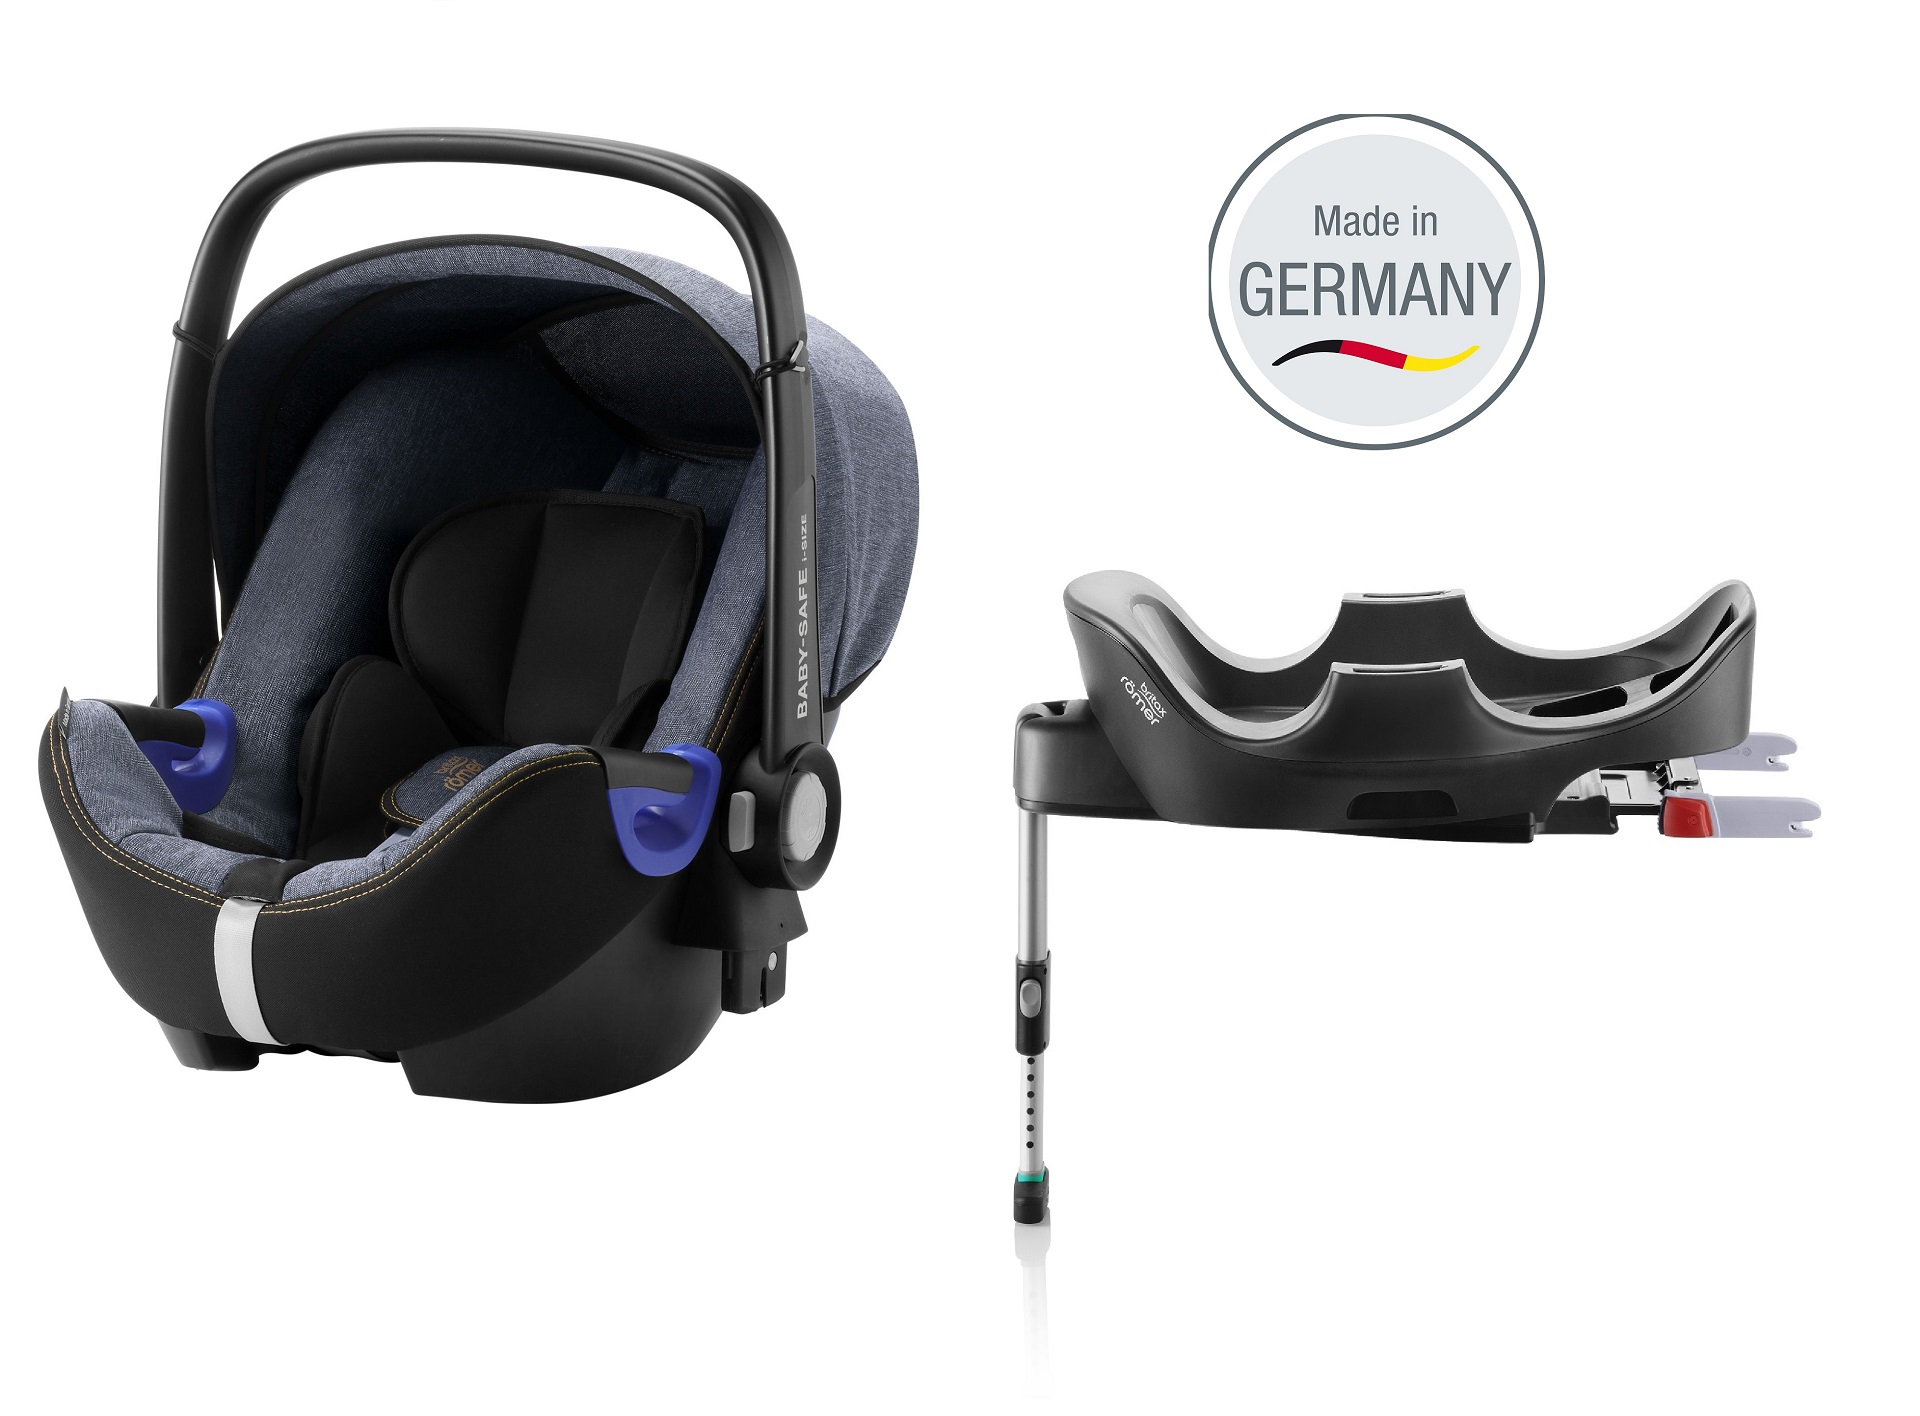 britax r mer infant car seat baby safe i size incl flex base 2018 blue marble buy at kidsroom. Black Bedroom Furniture Sets. Home Design Ideas